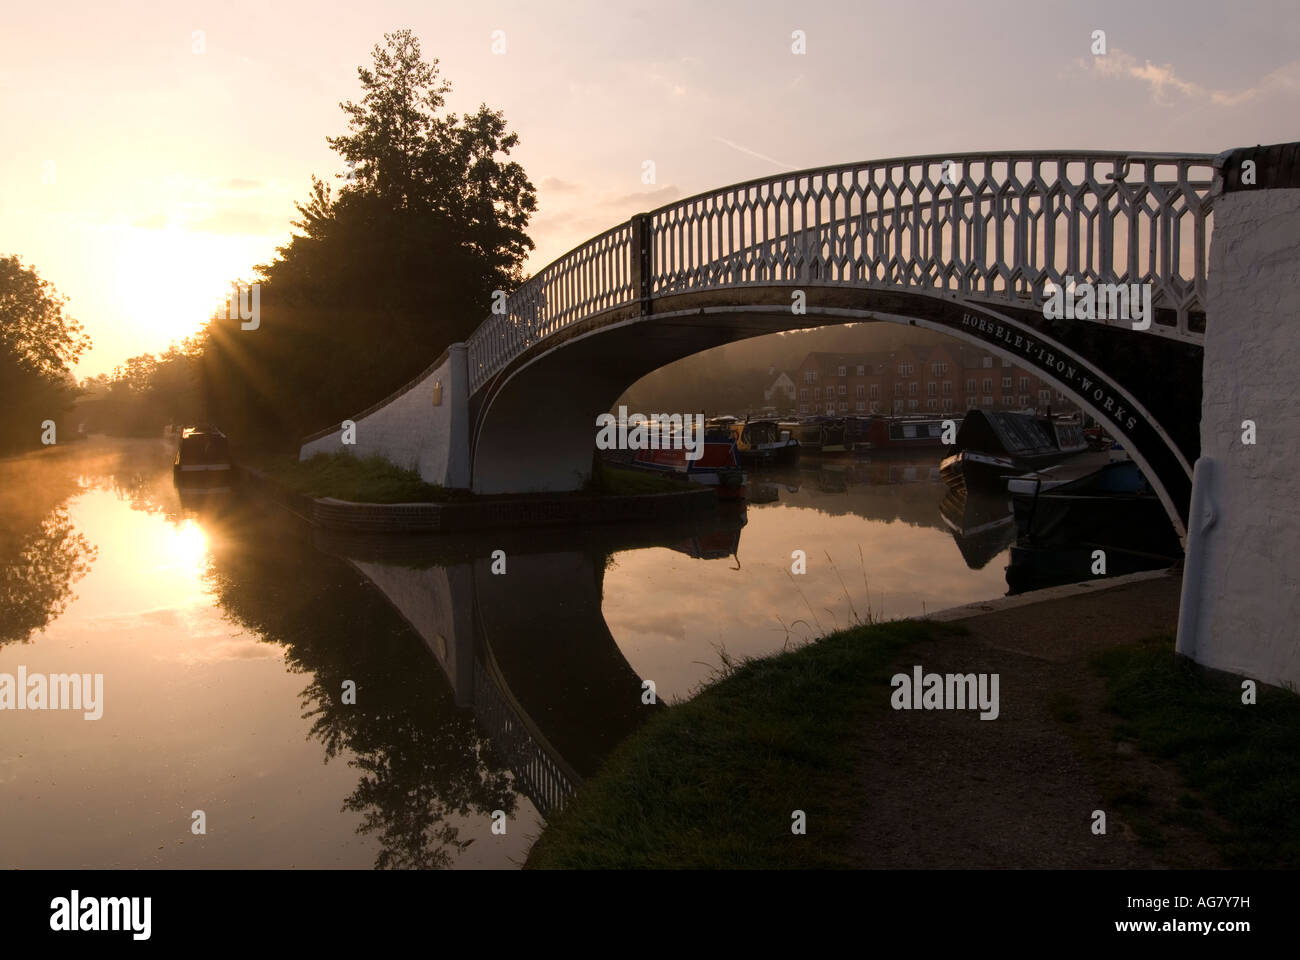 Doug Blane Braunston on the Grand Union Canal on a misty morning - Stock Image